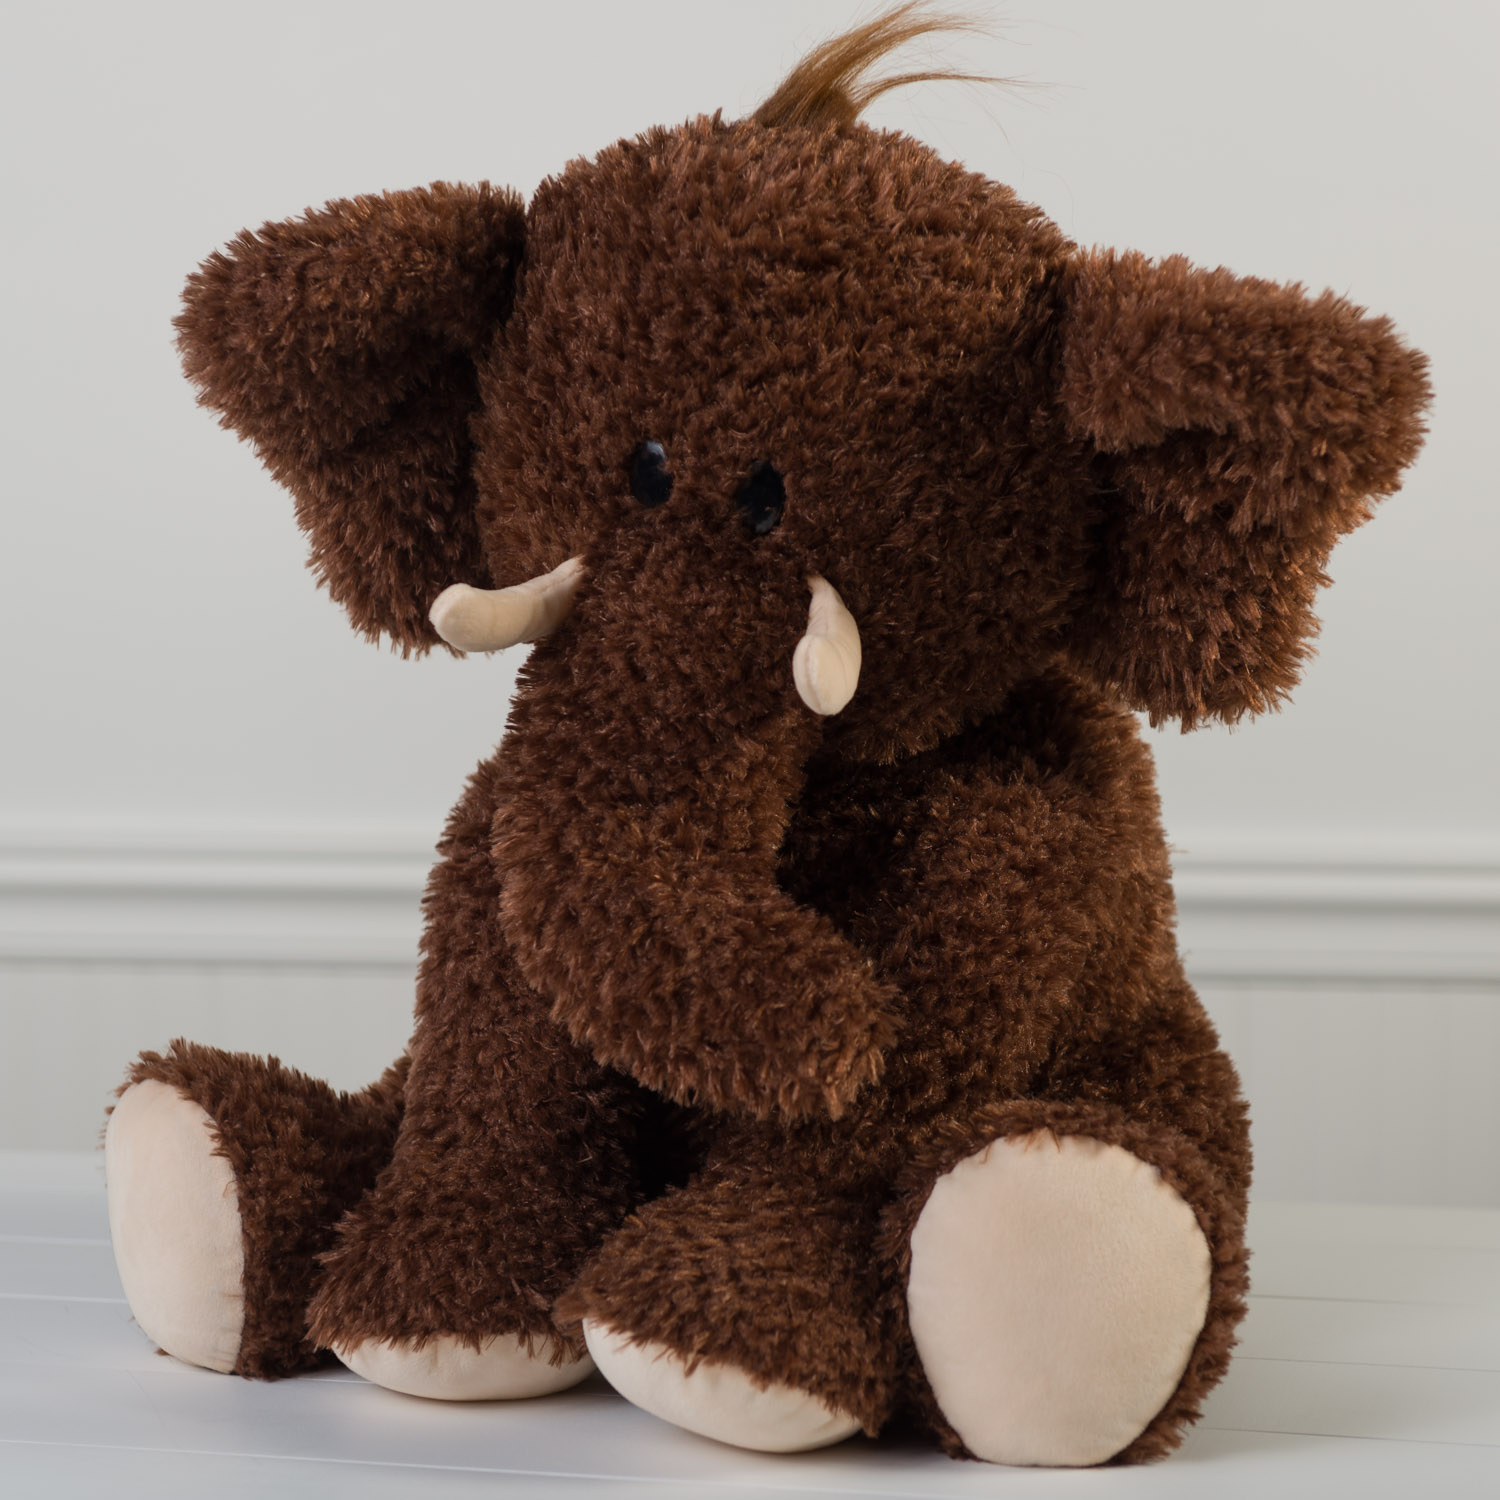 Jumbo Plush Wooly Mammoth